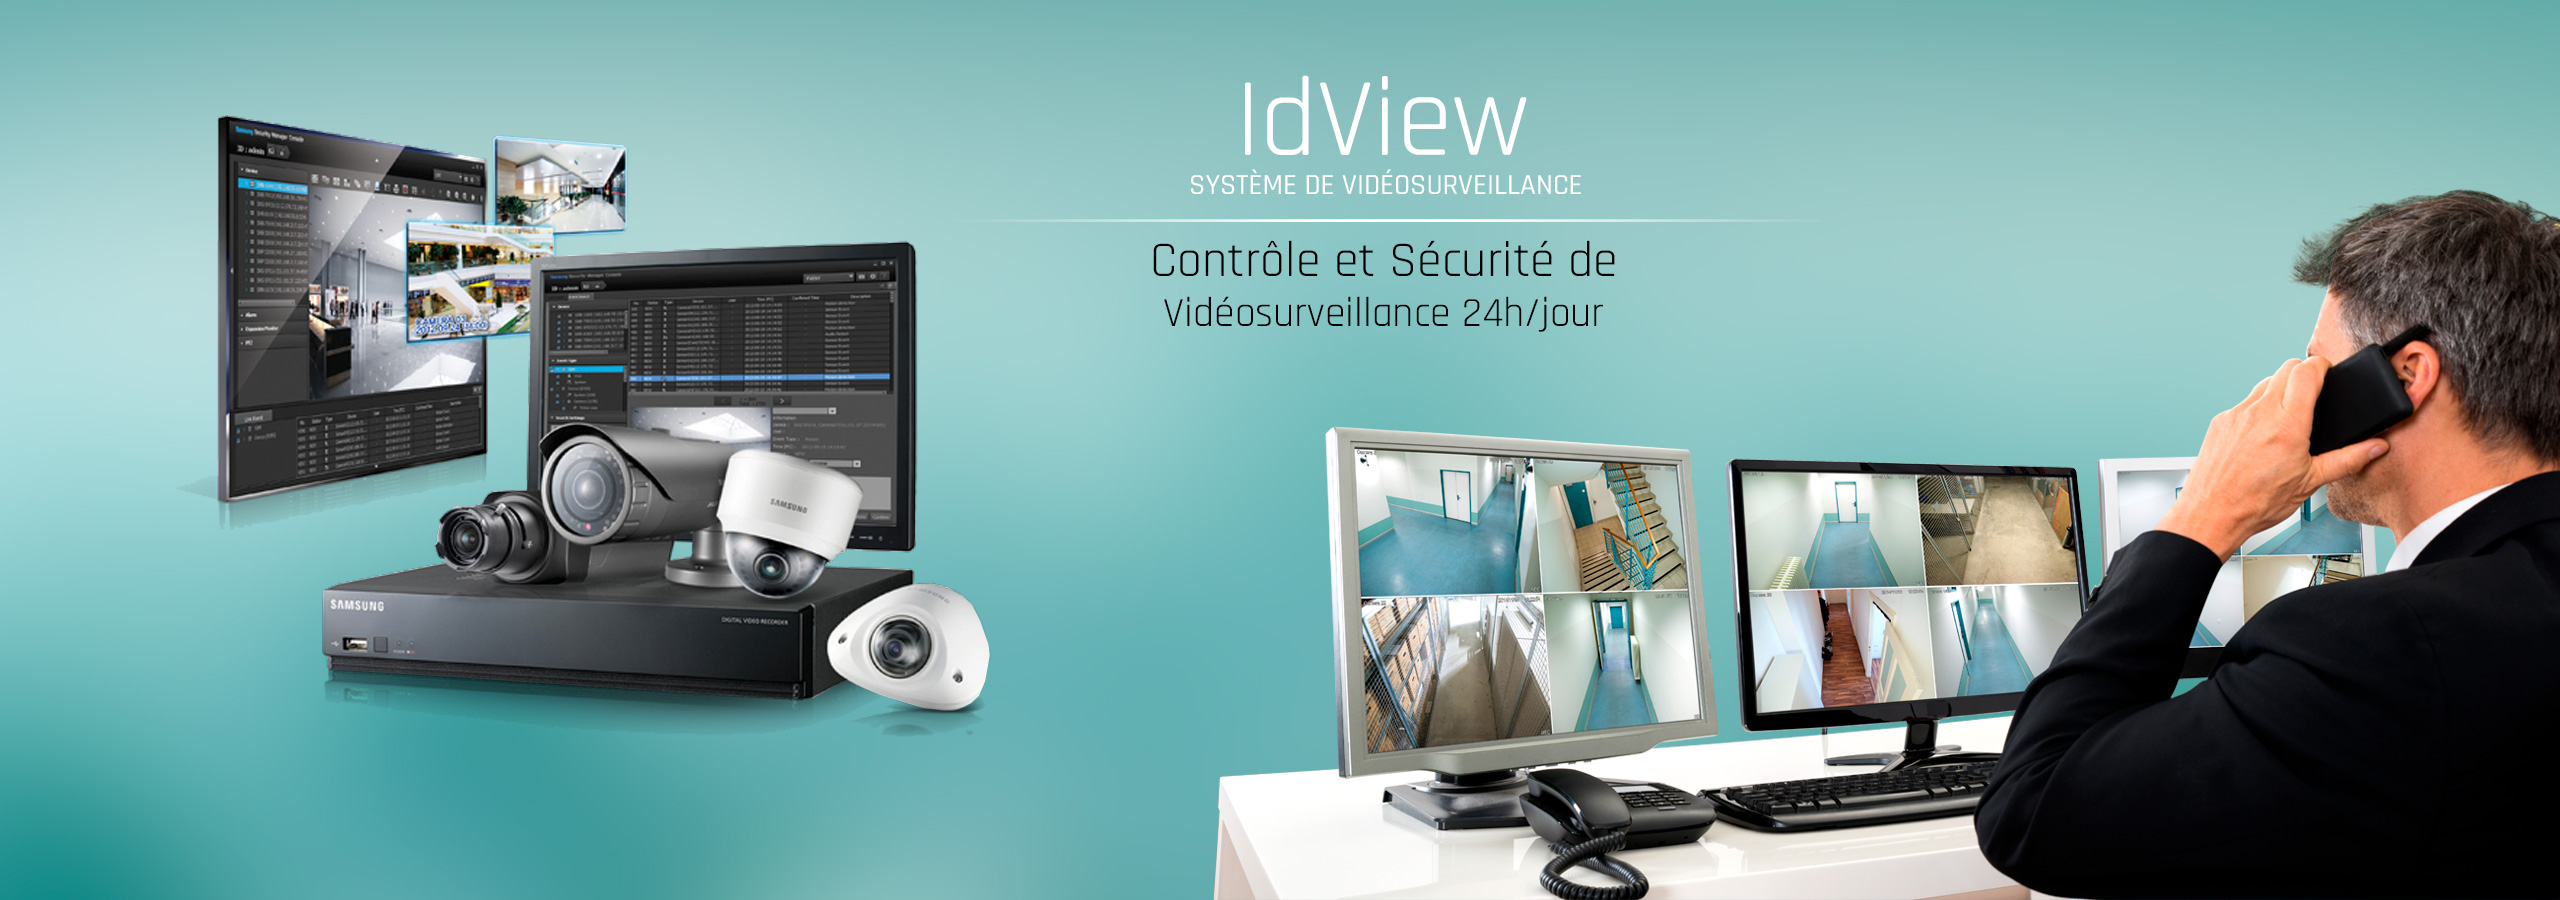 Destaque-Homepage-IdView-FR